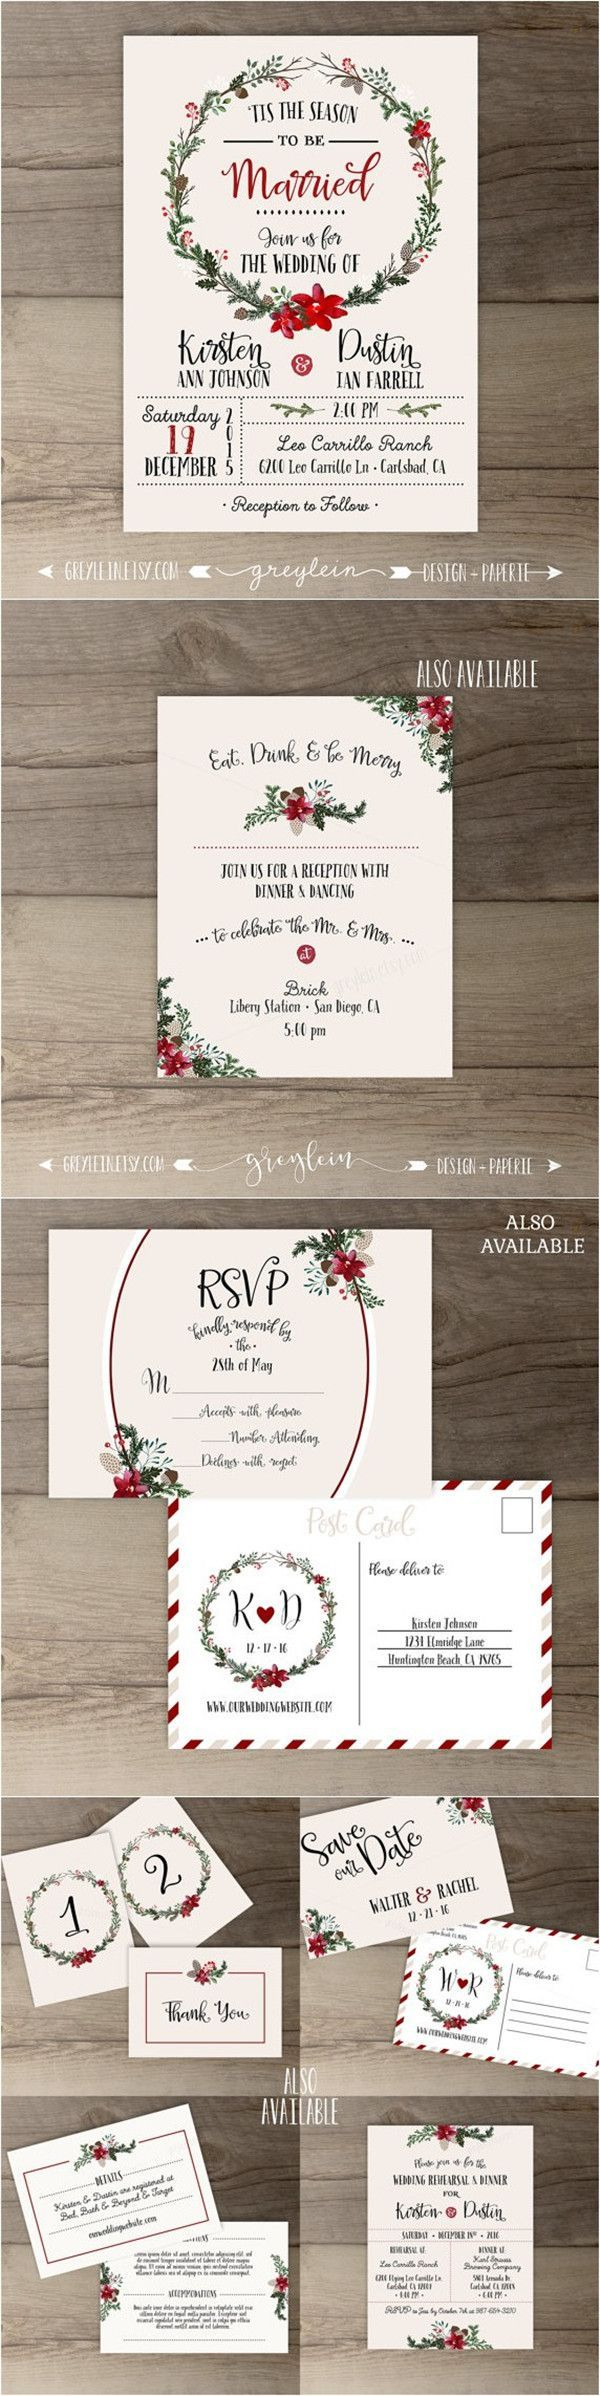 3097 Best Themed Wedding Ideas Images On Pinterest Weddings